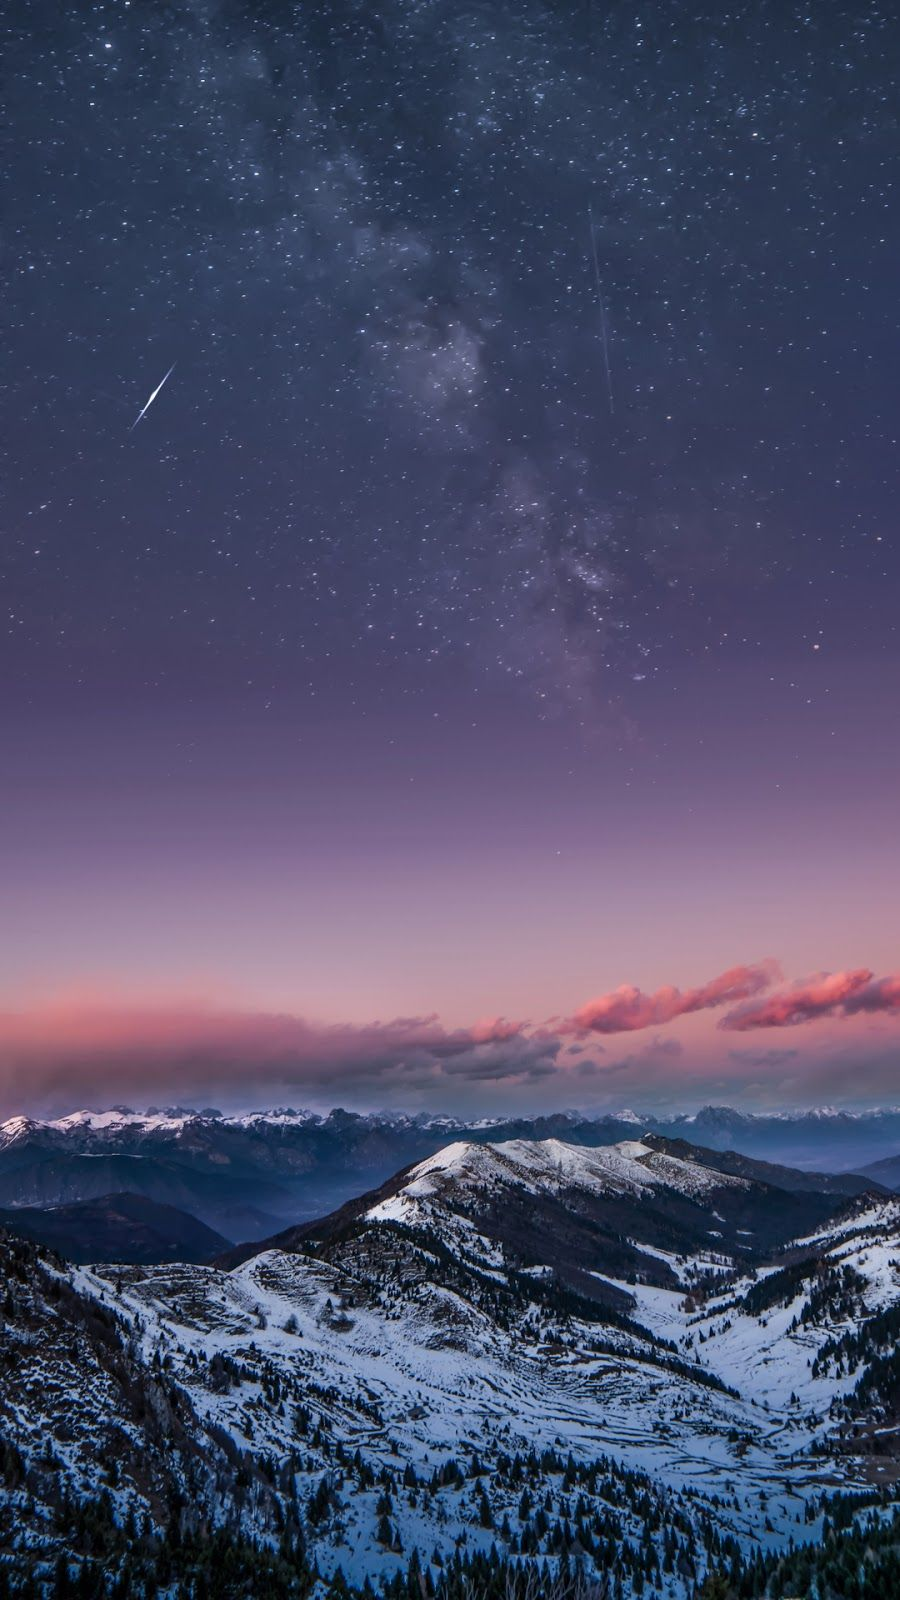 Iphonewallpaper Iphone Wallpaper Android Androidwallpaper Iphonebackground Starry Night Wallpaper Landscape Wallpaper Sky Aesthetic